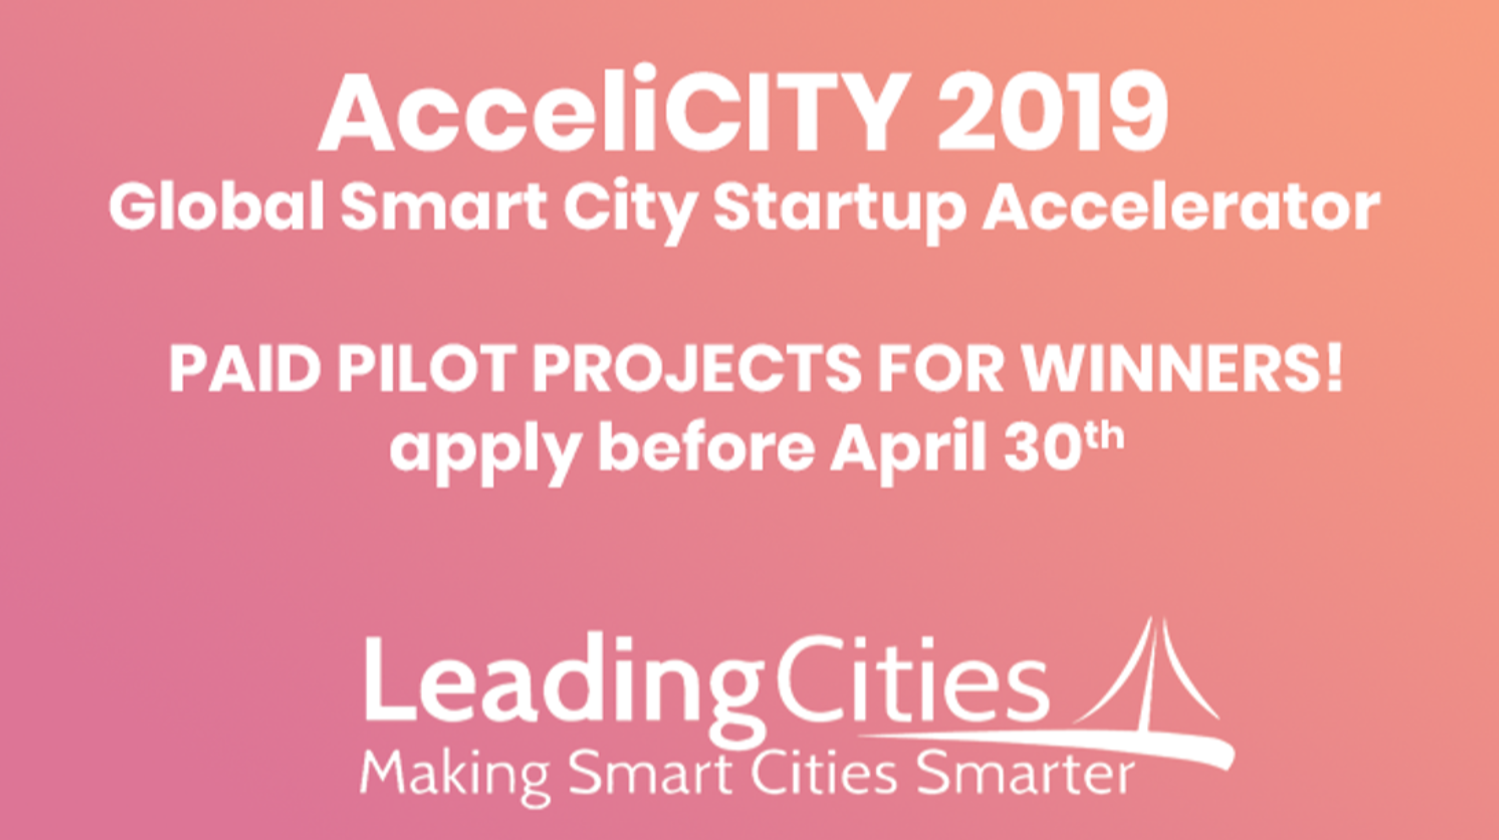 accelicity-smart-city-startup-accelerator-2019